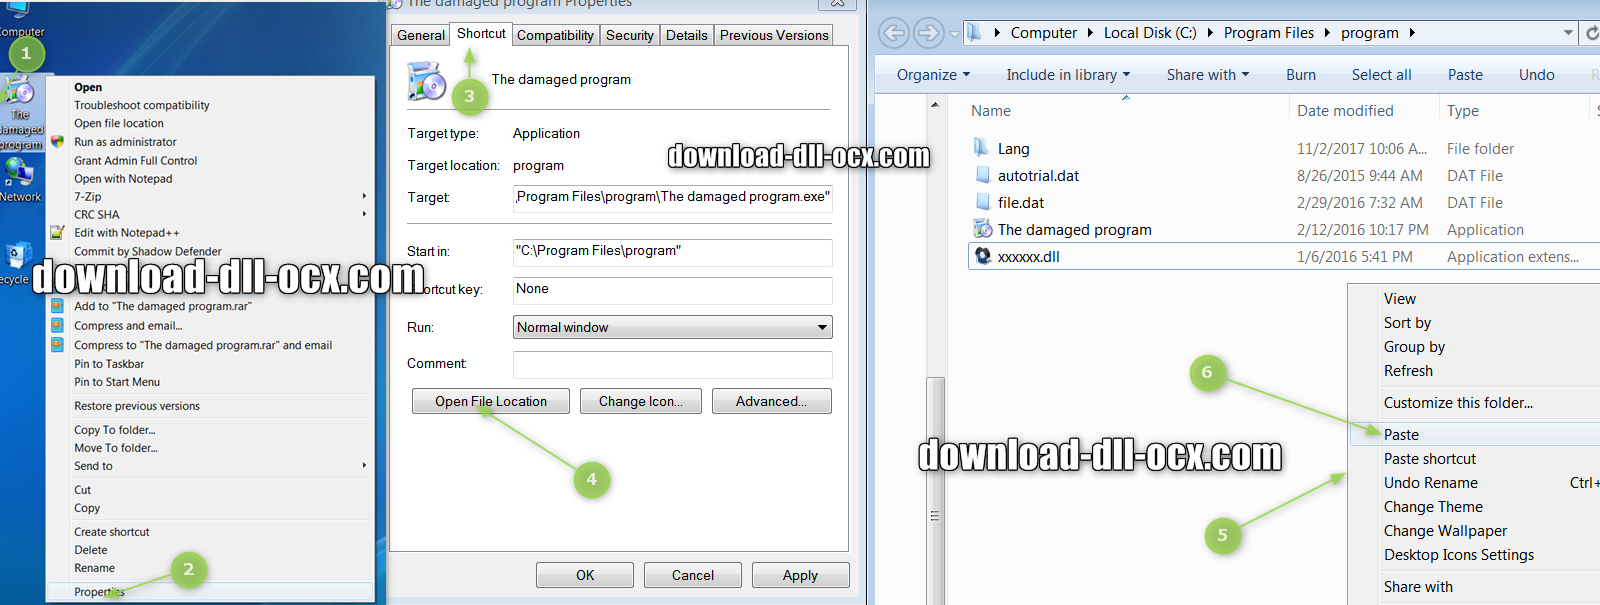 how to install Jabo_direct3d6.dll file? for fix missing